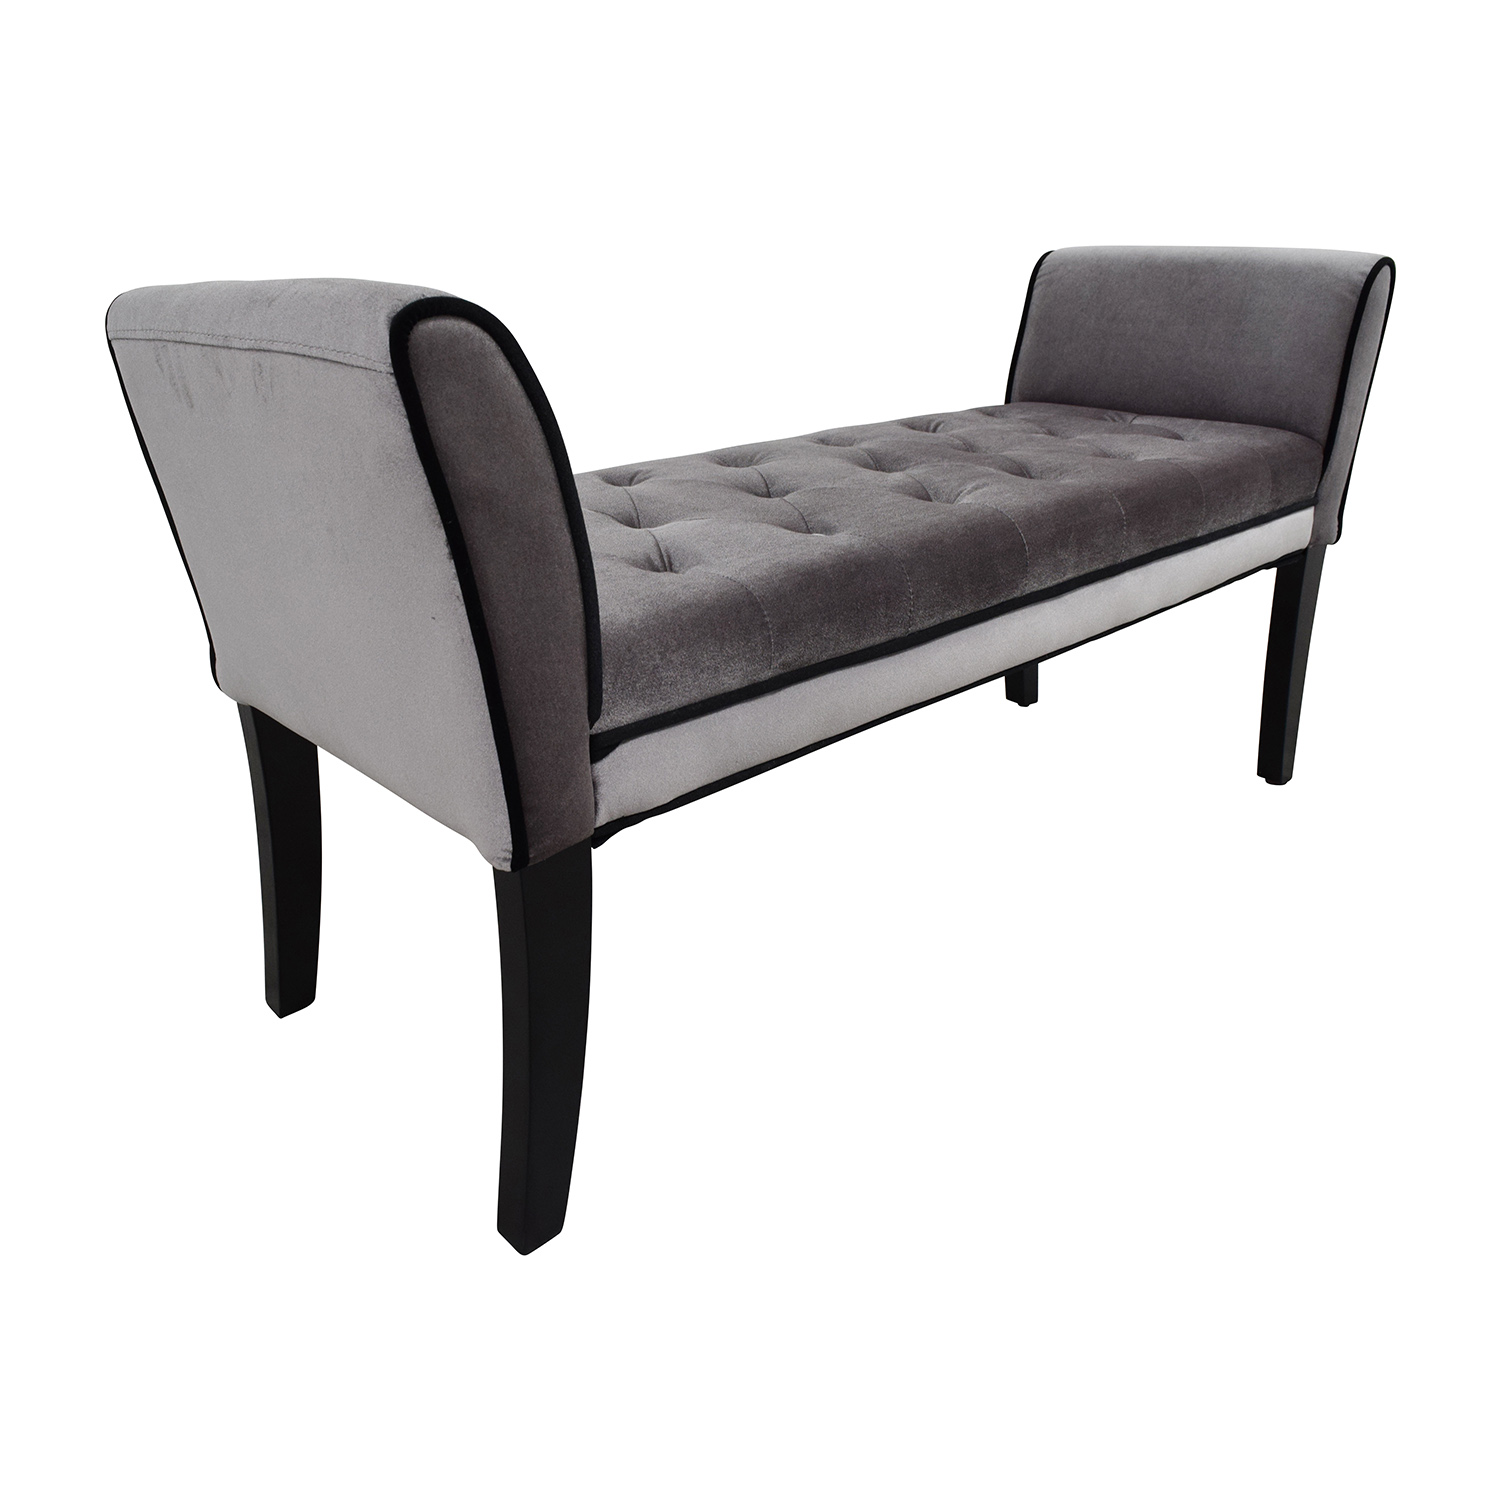 54 Off Inmod Inmod Grey Tufted Chatham Bench Chairs